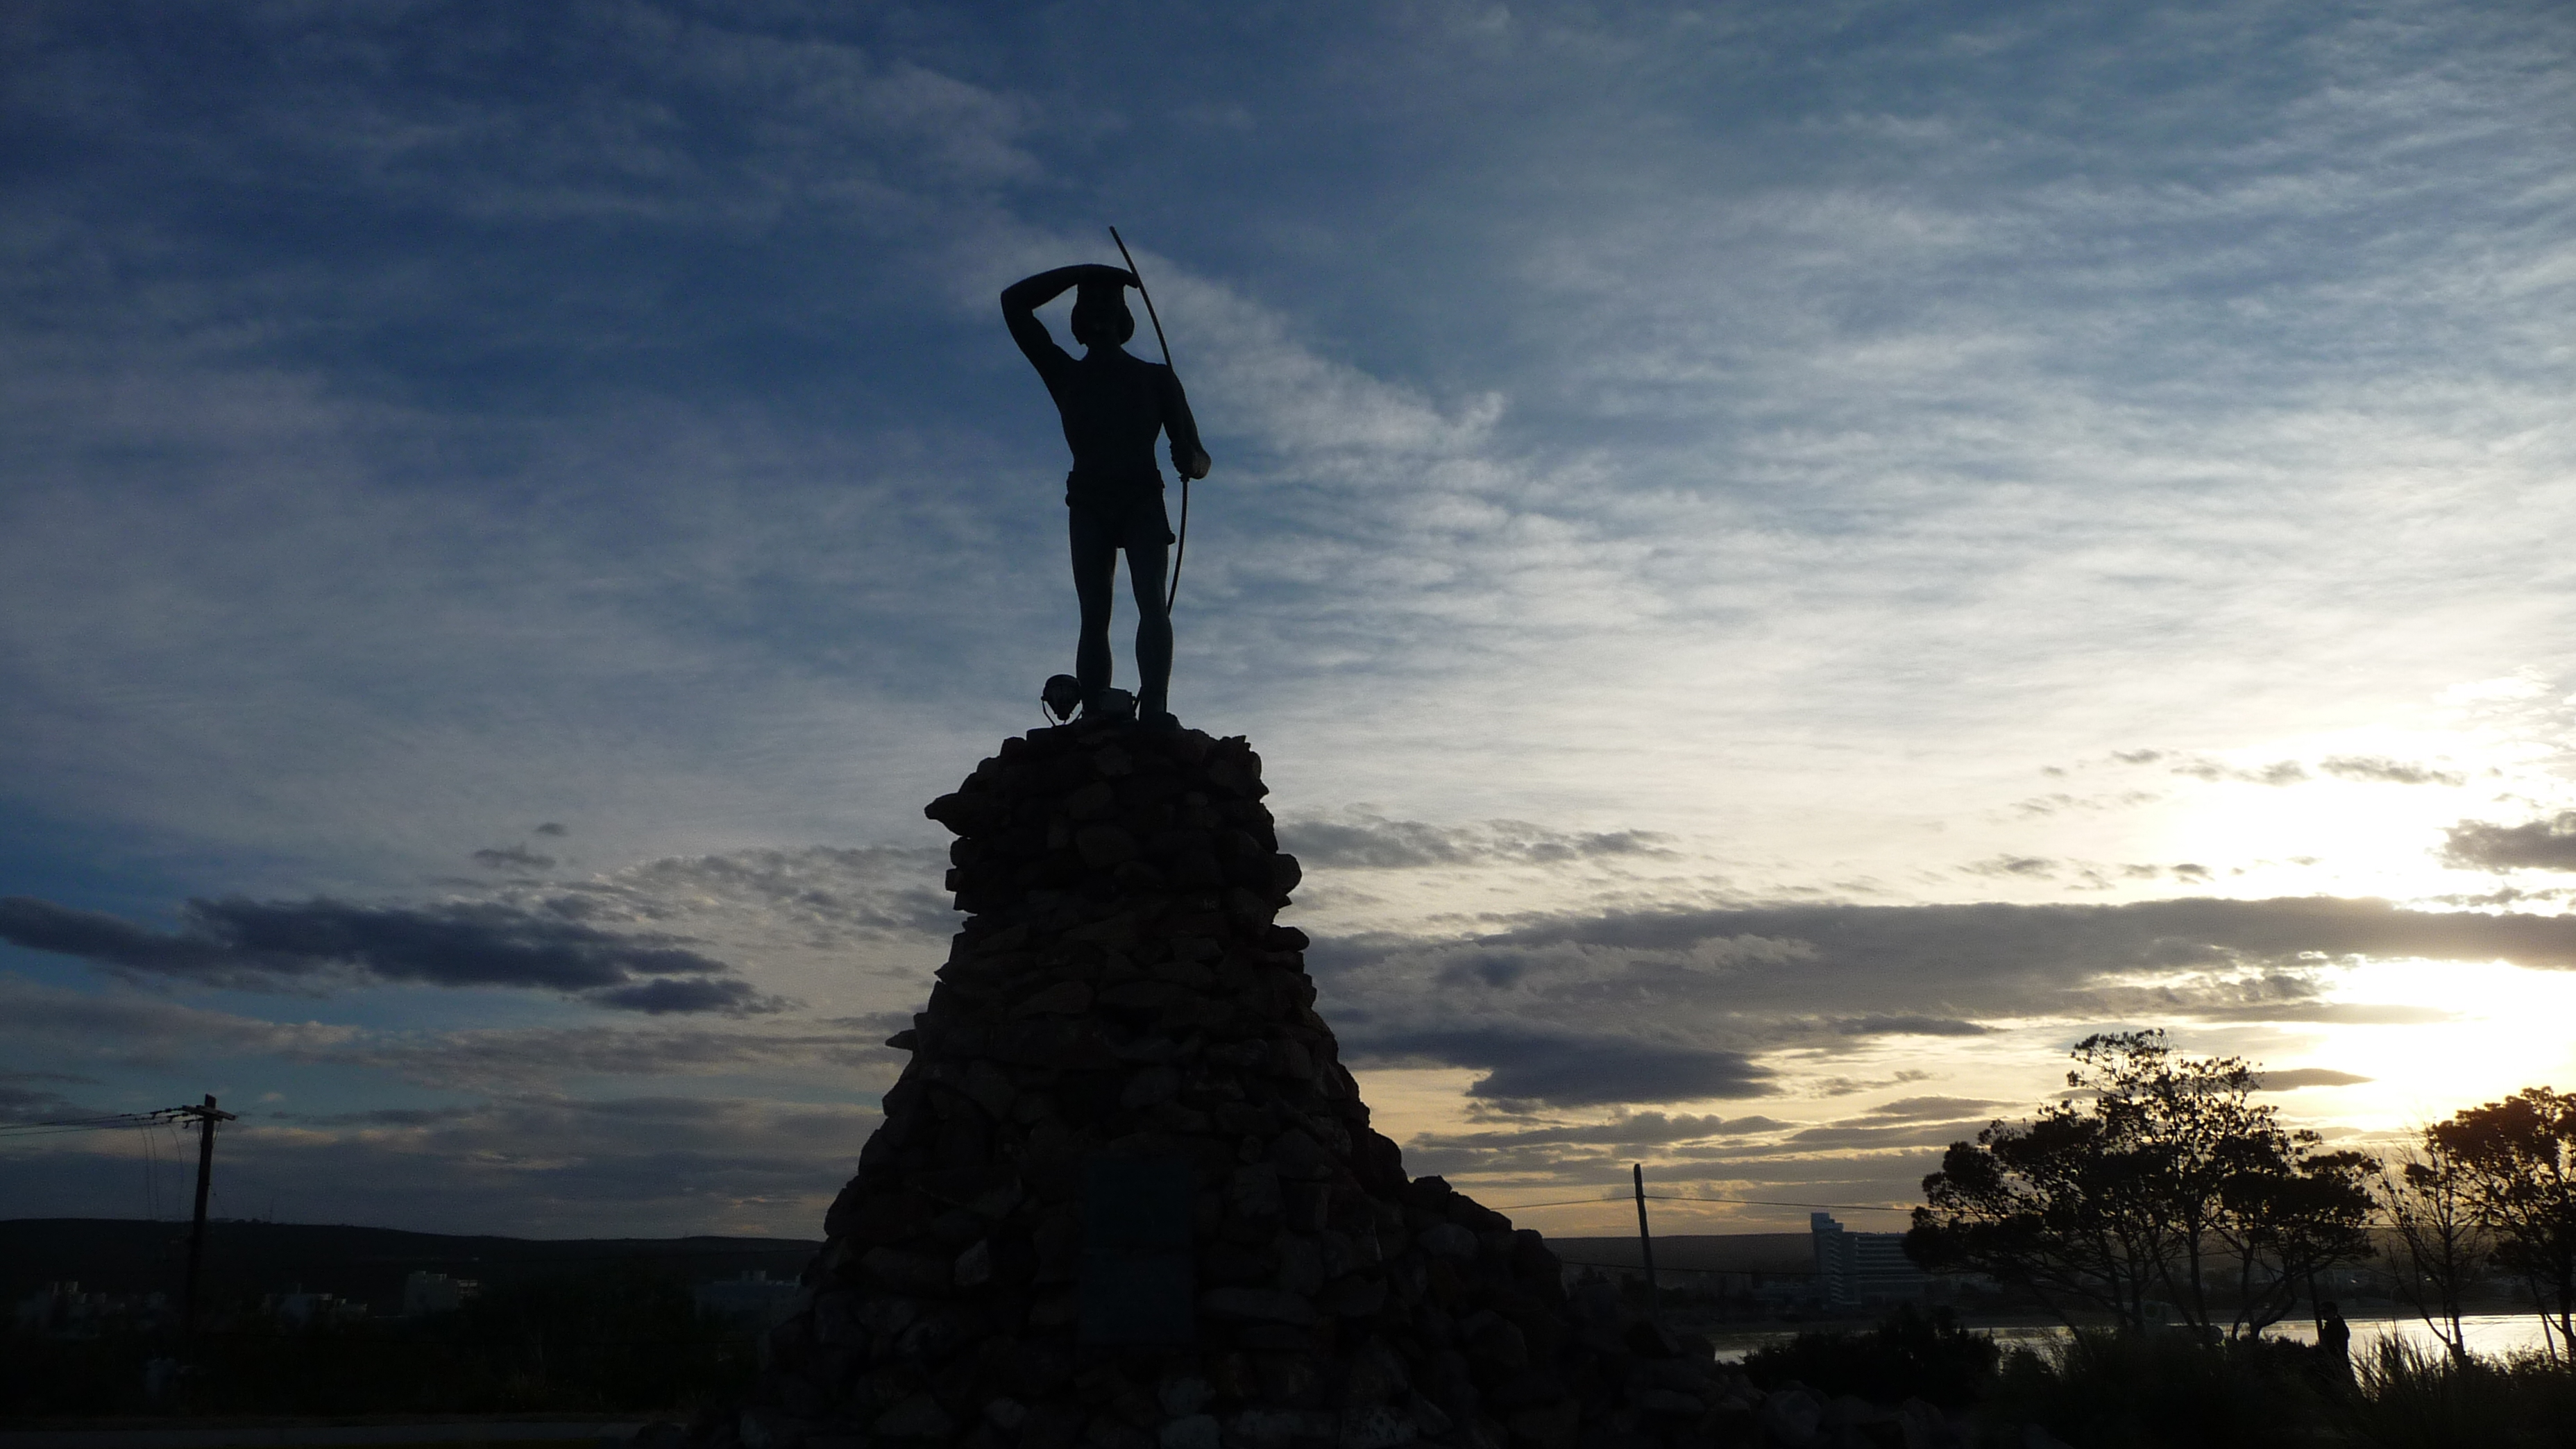 Monument to commemorate the first Welsh settlement in Patagonia, just outside Puerto Madryn, Argentina